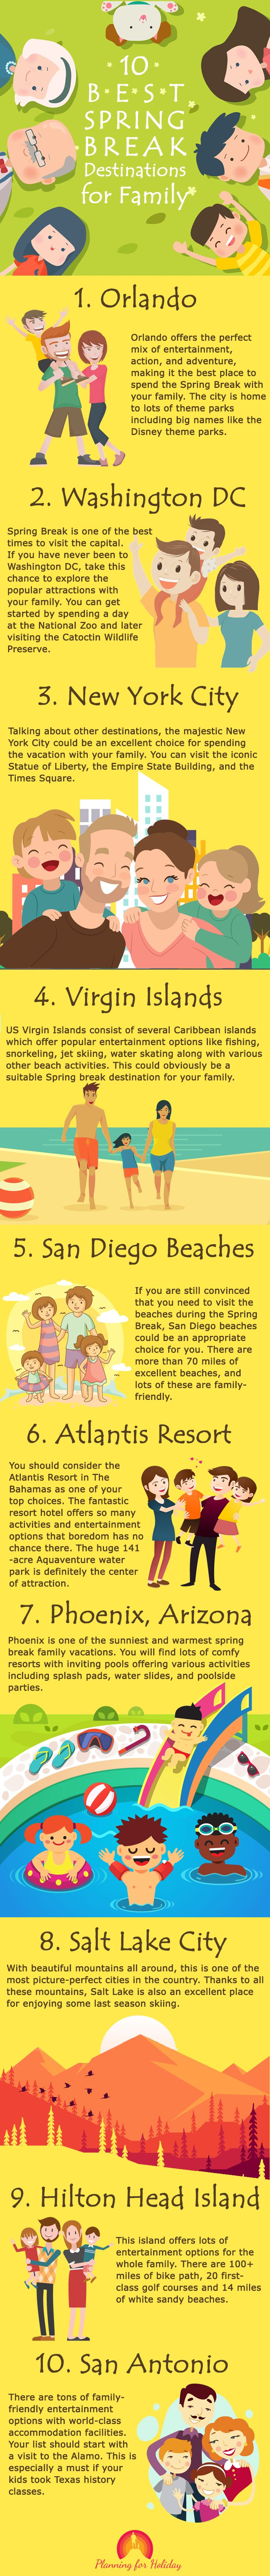 Looking for the best spring break ideas for families? You have come to the right place. Check out the list of the 10 best spring break family #destinations for this year. #Traveling #Travel #Vacation #SpringBreak